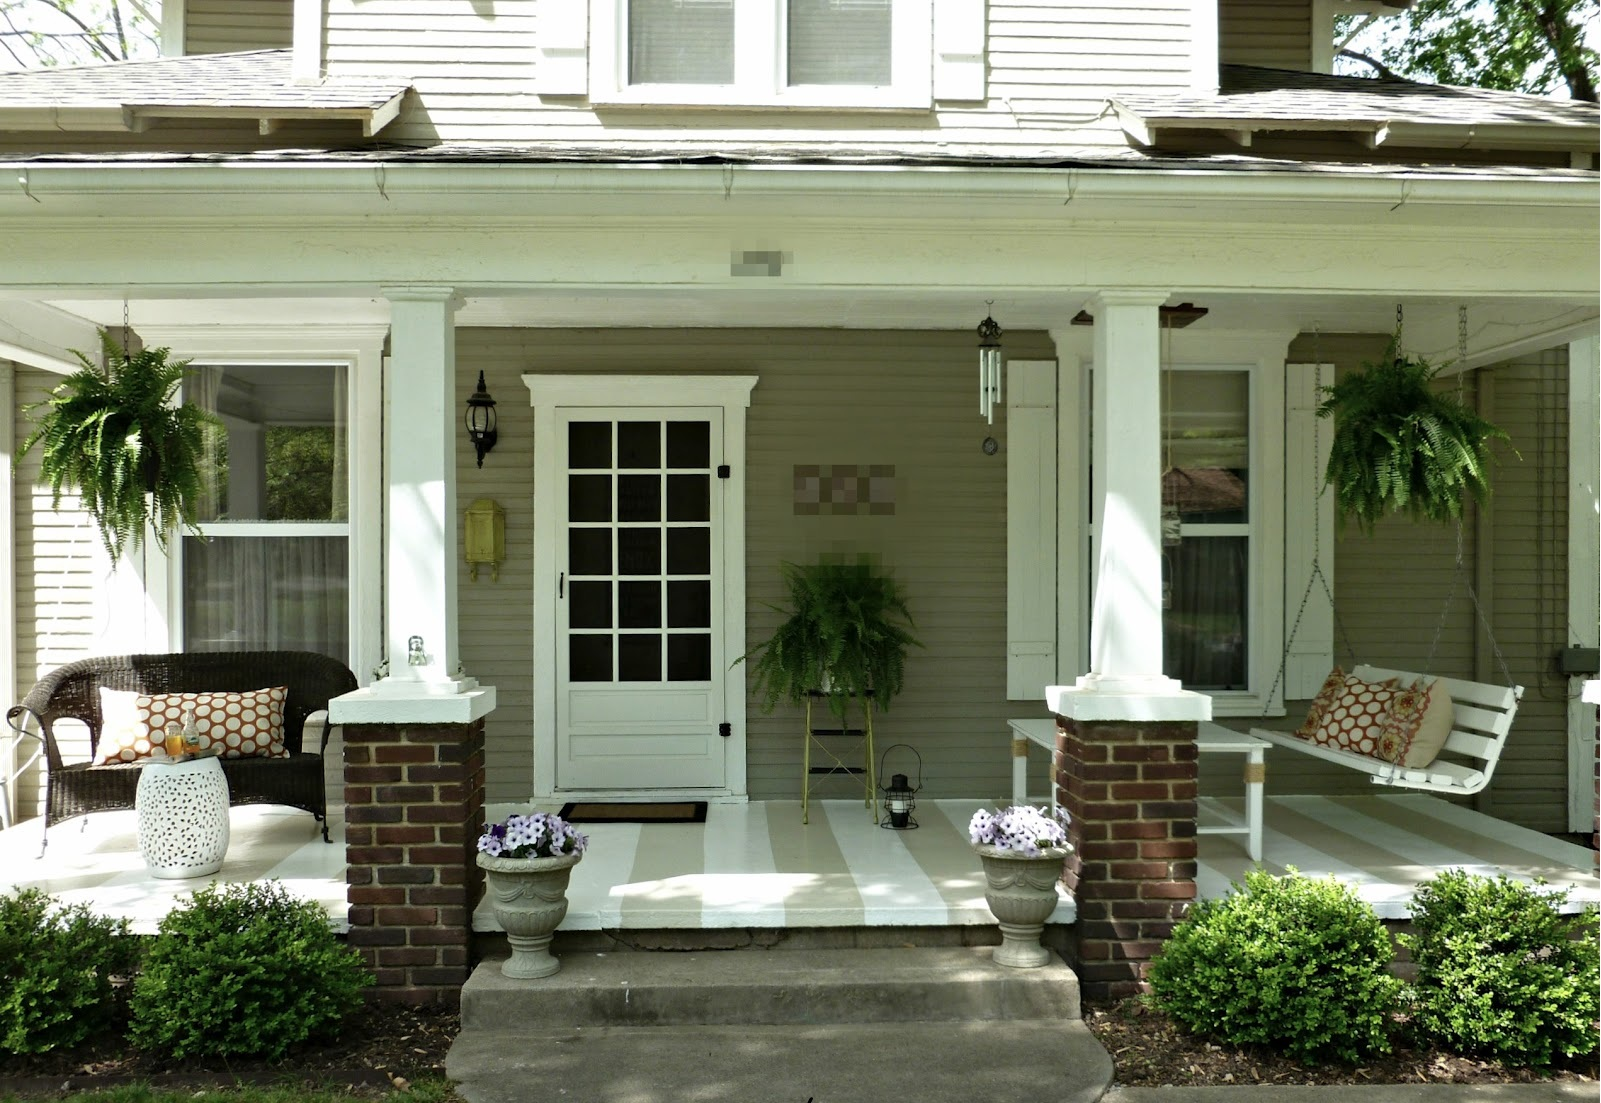 Beautifull Front Porch Ideas for Small Houses